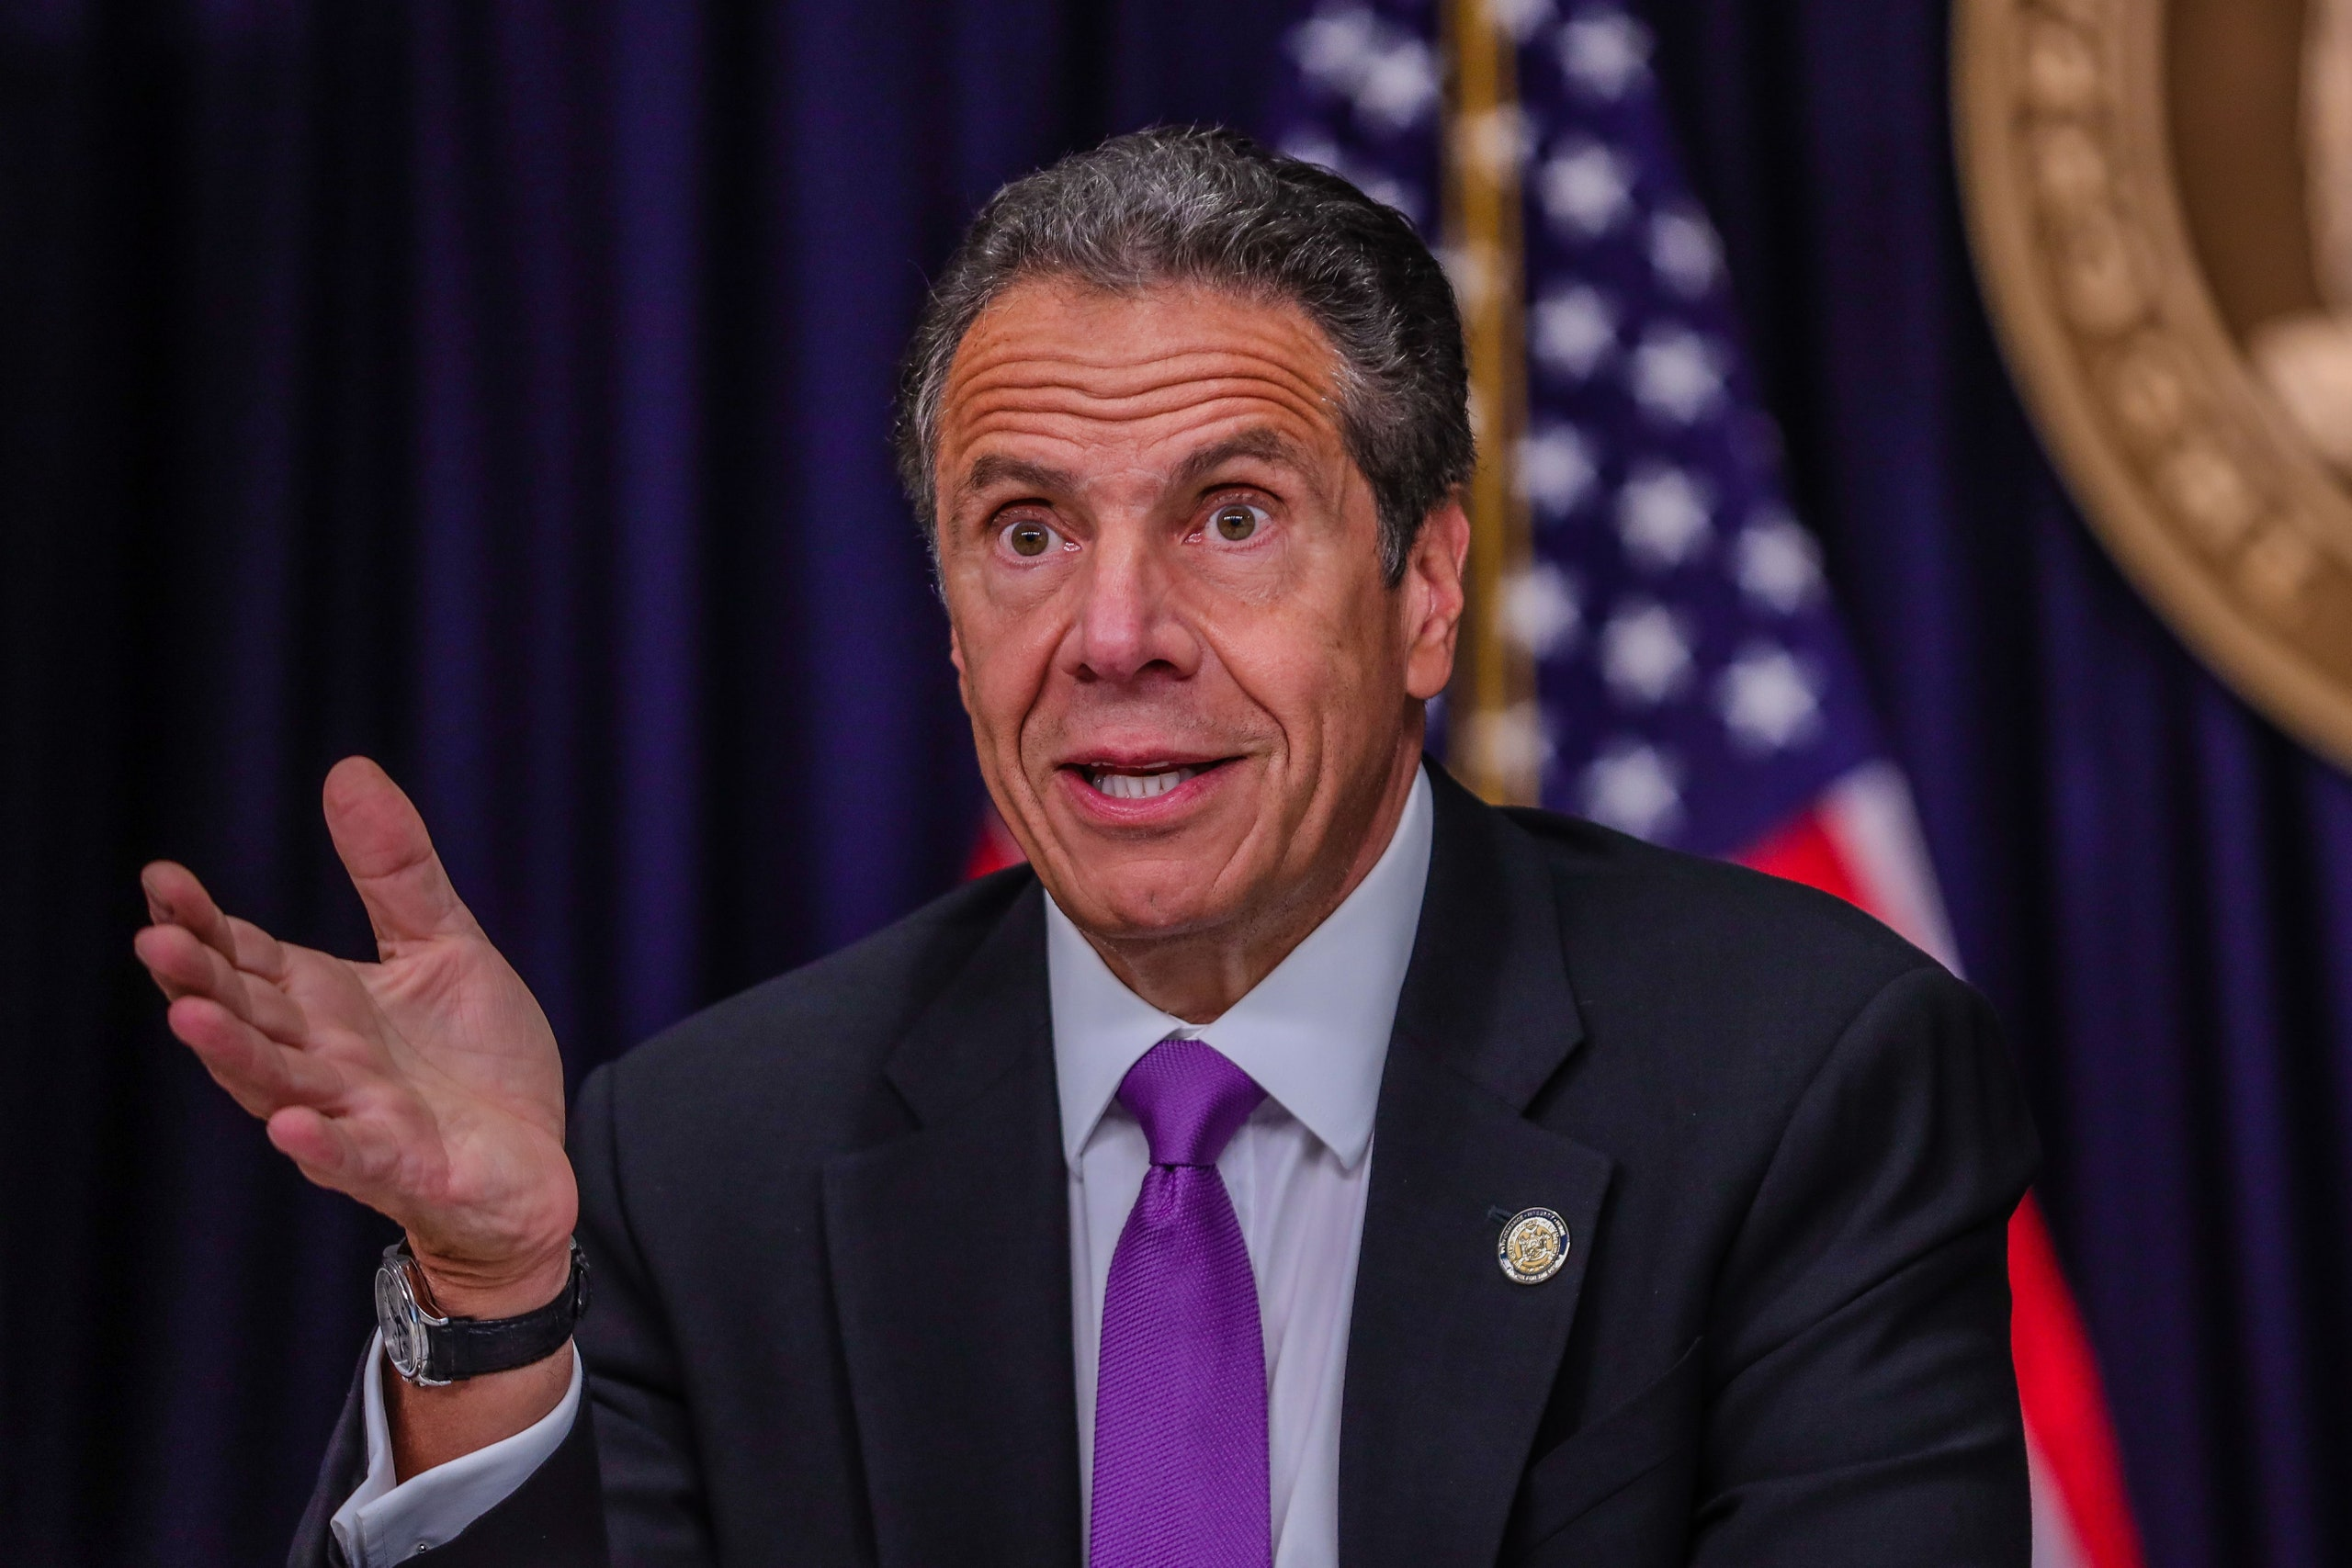 The Cesspool That Is New York: Sexual Abuse, Death and Medical Jim Crow